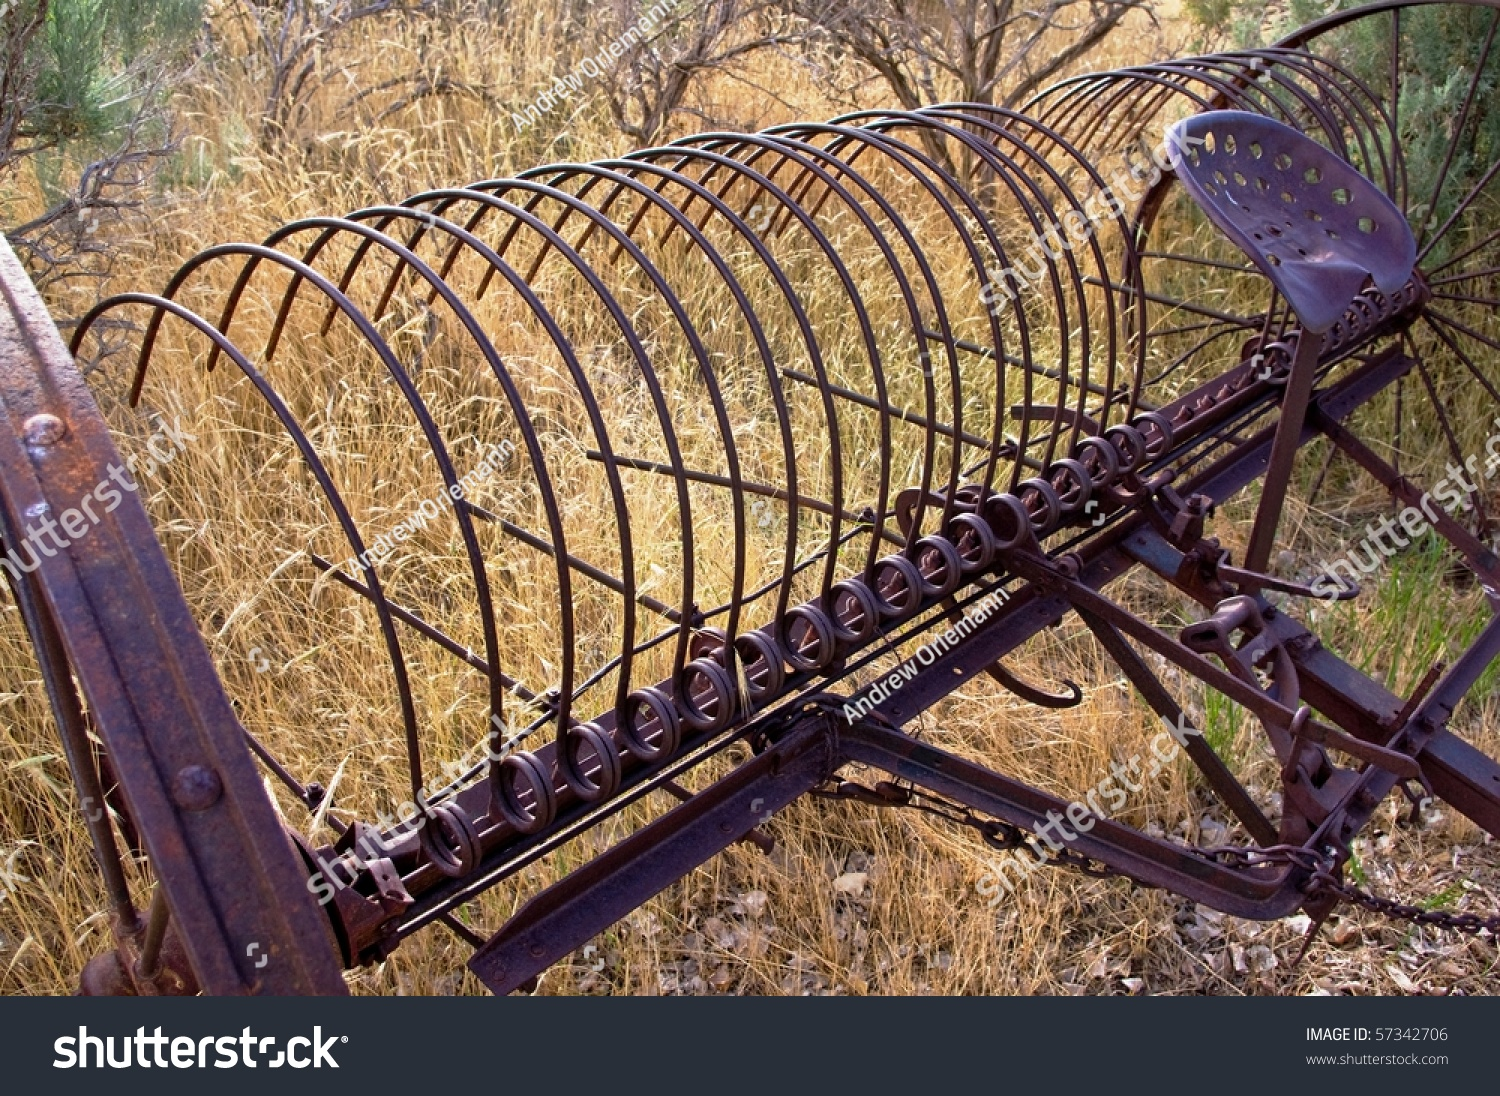 Farm Implement Pieces : A rusting piece of farm equipment in an overgrown field